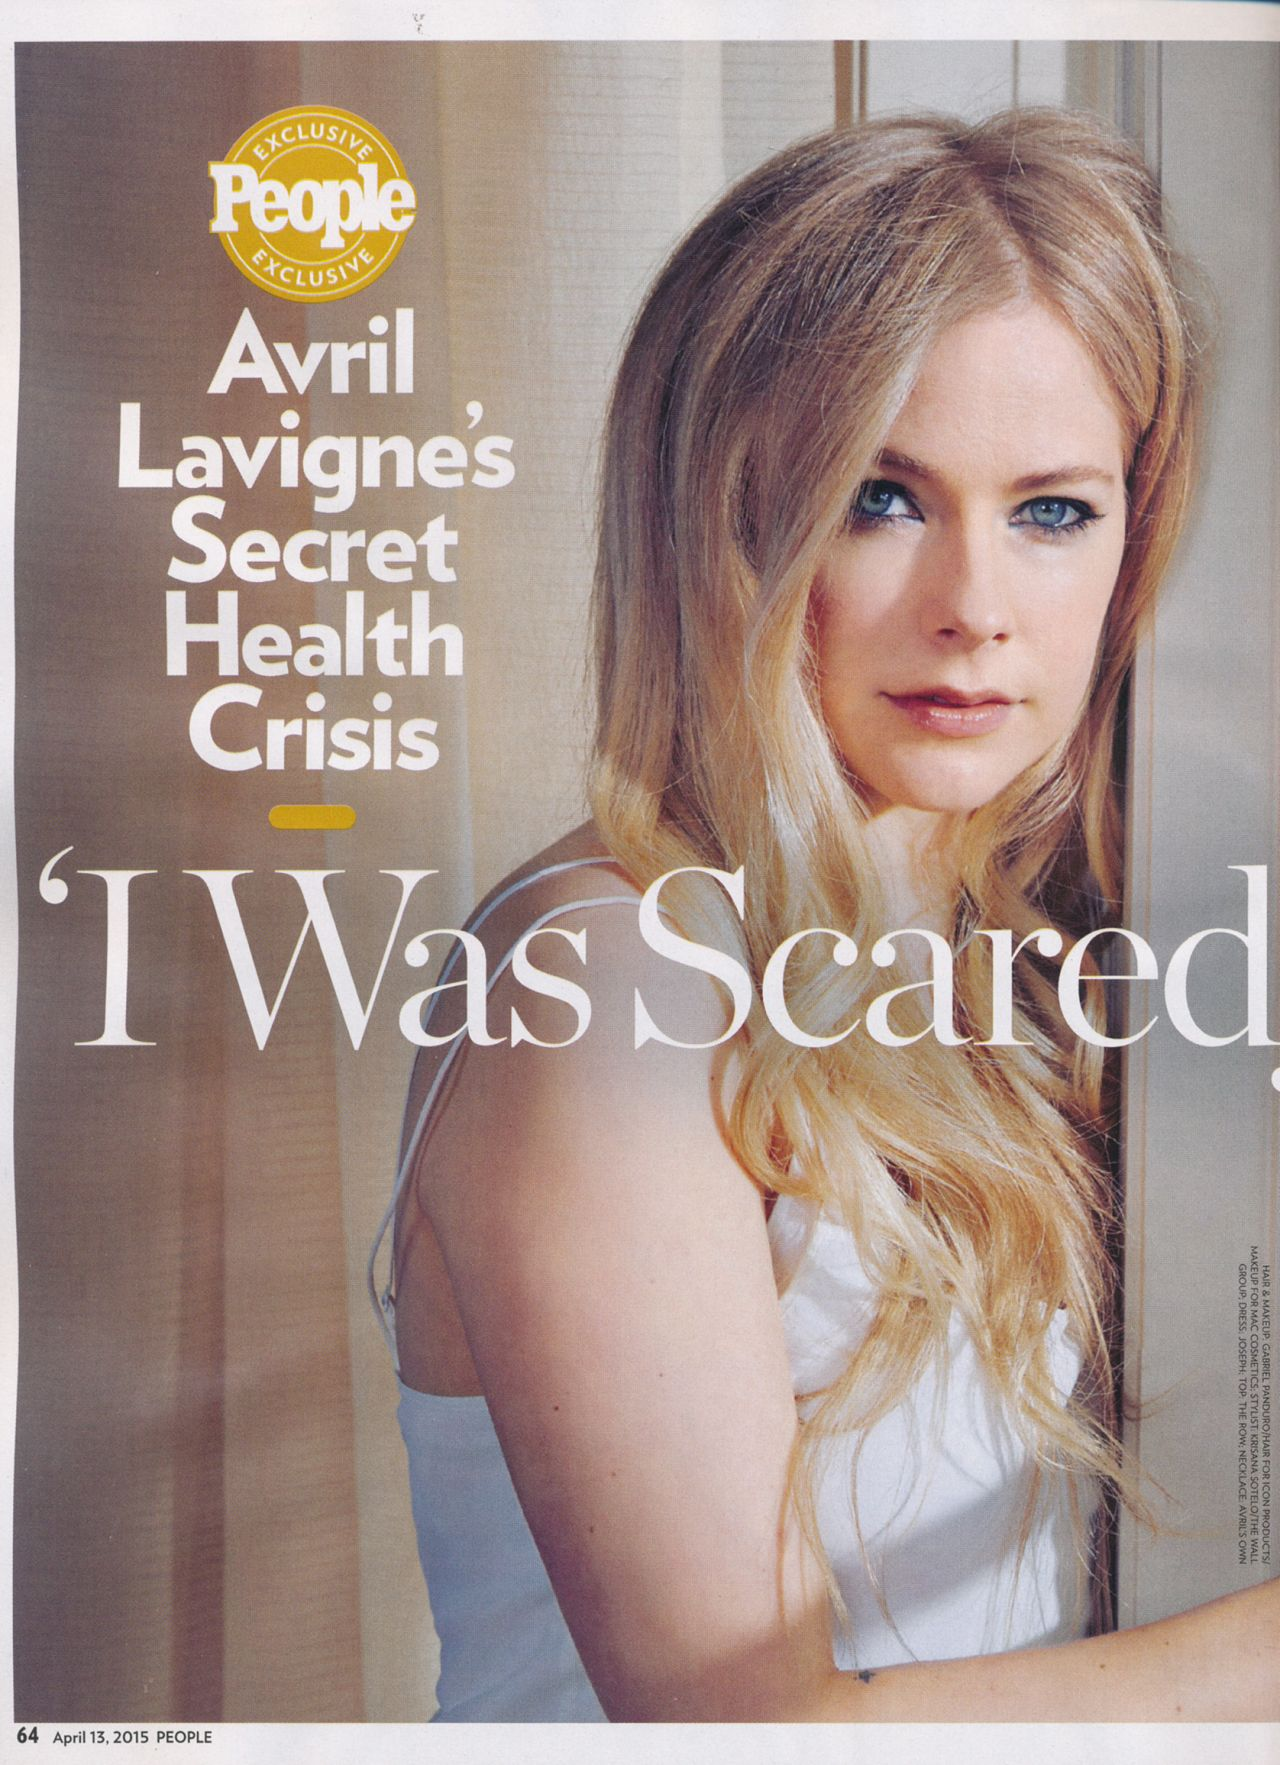 Avril Lavigne People Magazine April 2015 Issue